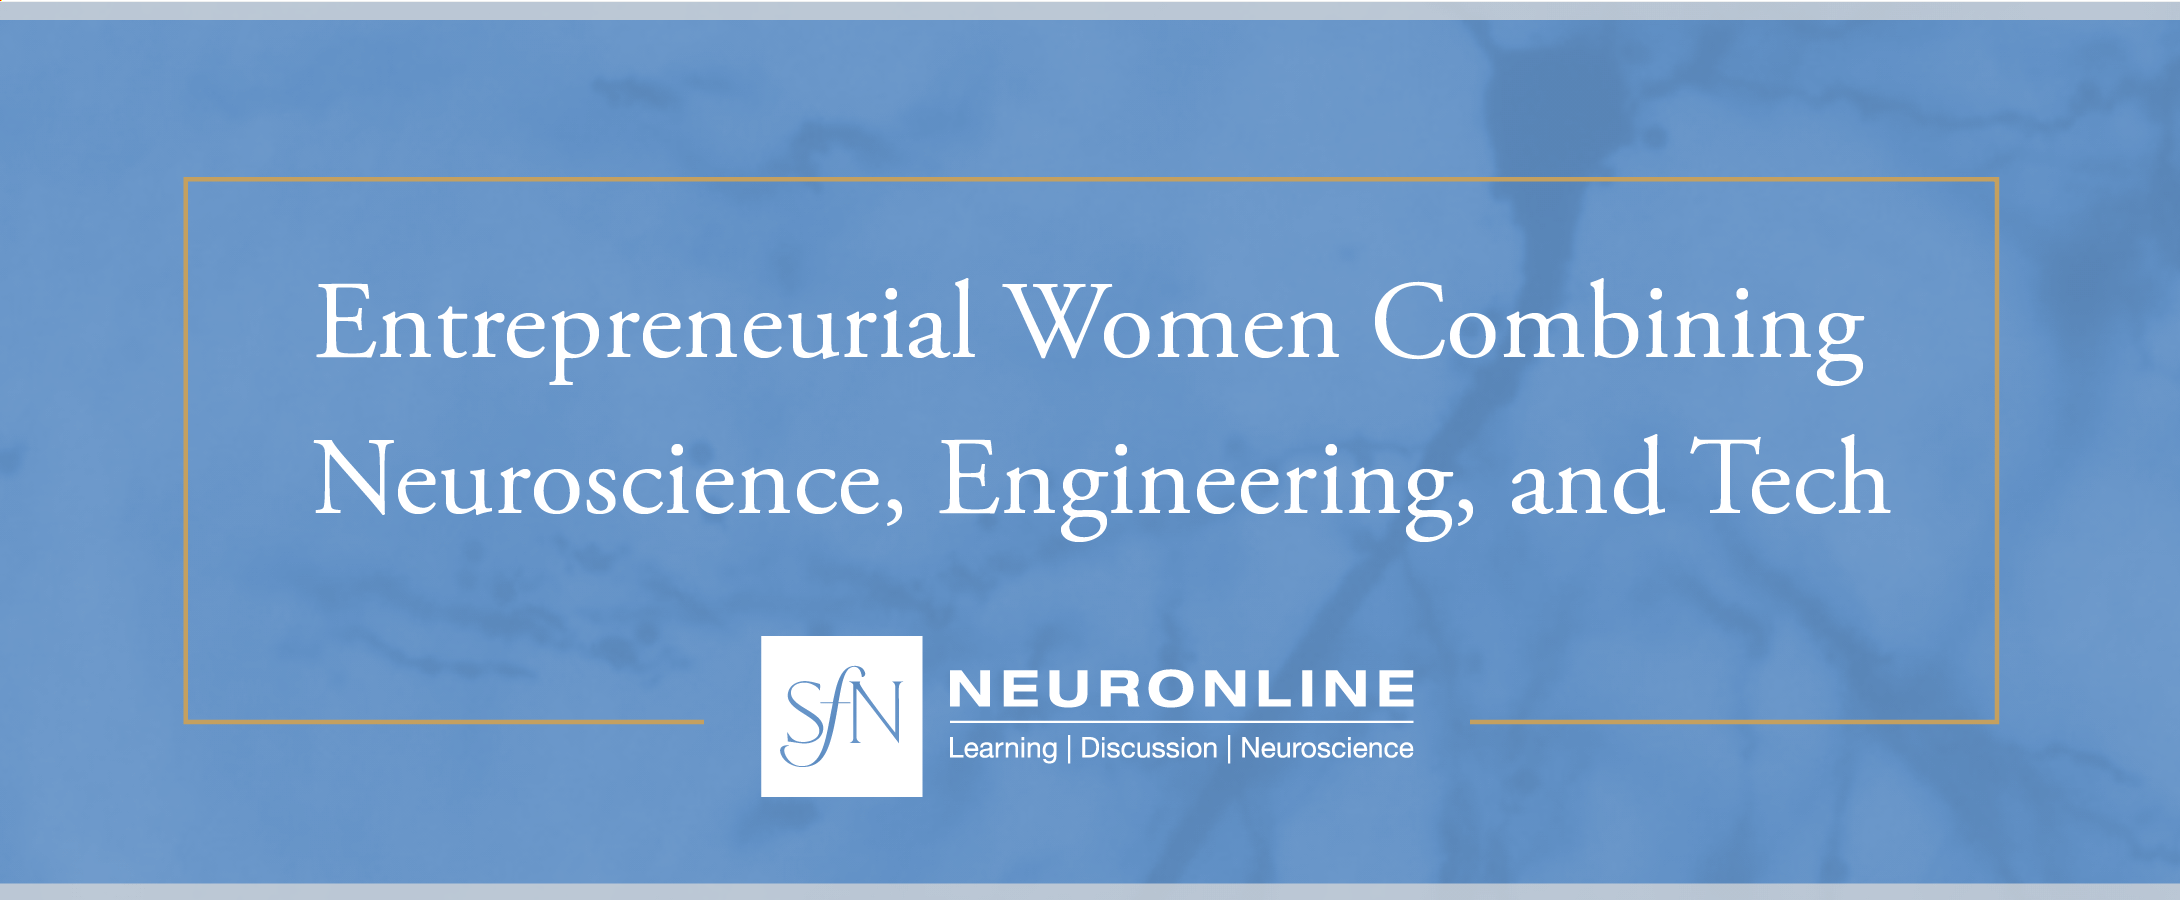 "Title card stating ""Entrepreneurial Women Combining Neuroscience, Engineering, and Technology"" in white text on a blue background, with the Neuronline logo below."